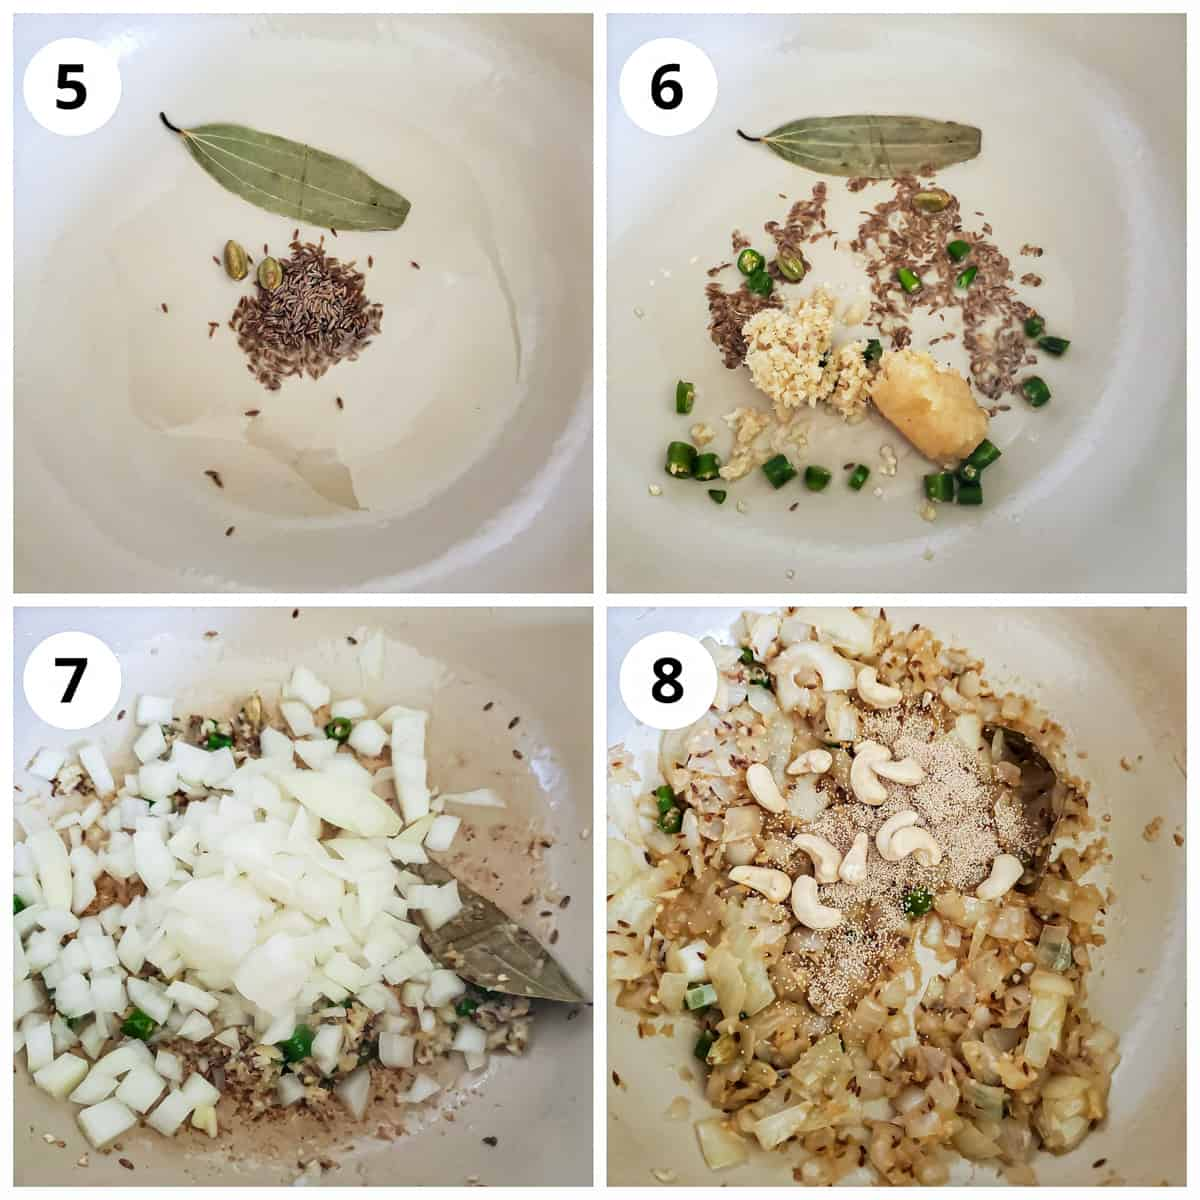 Steps for cooking ginger garlic, onions and cashews